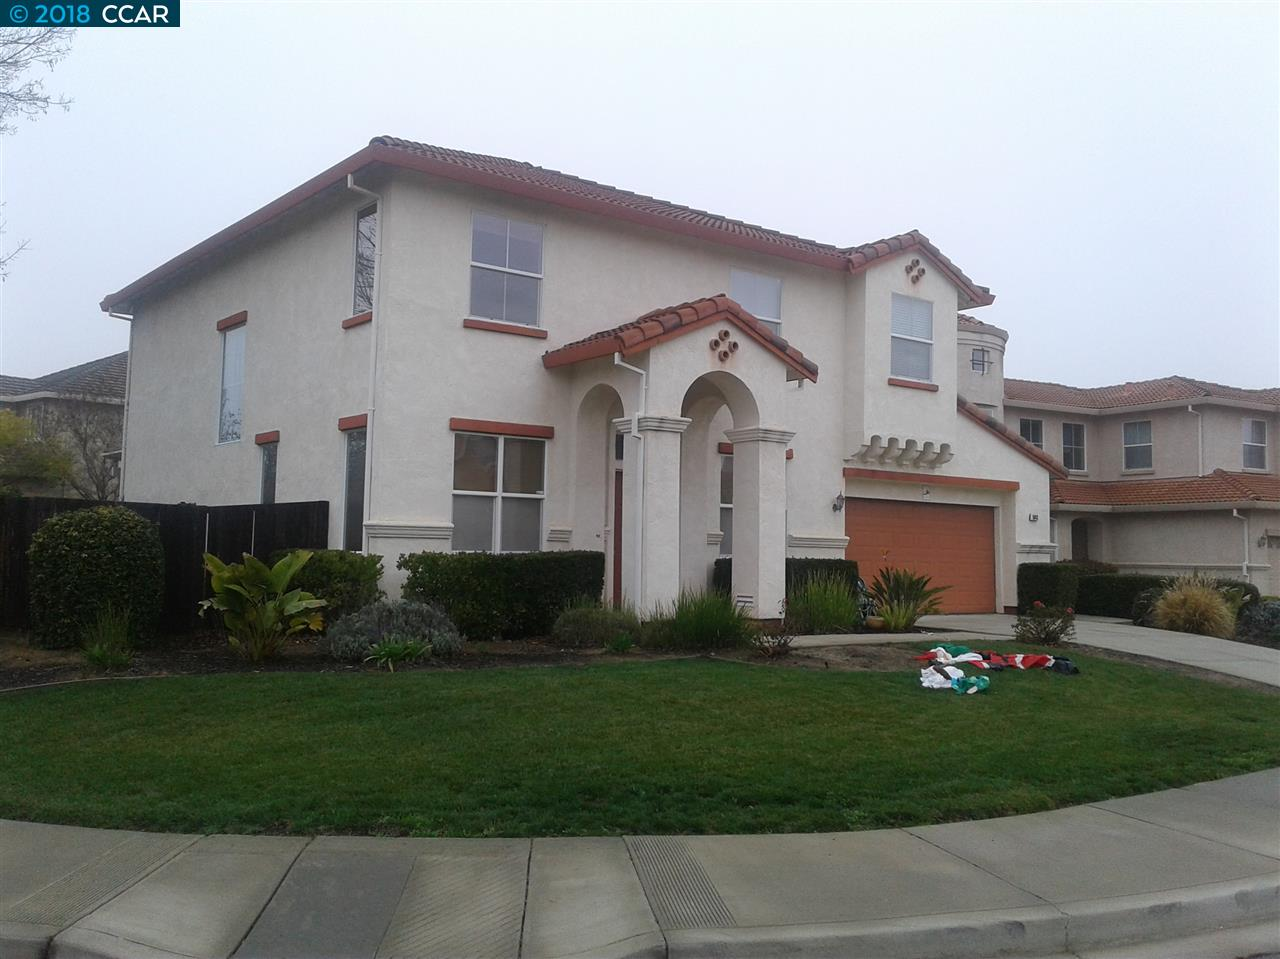 1843 MOUNT CONNESS WAY, ANTIOCH, CA 94531